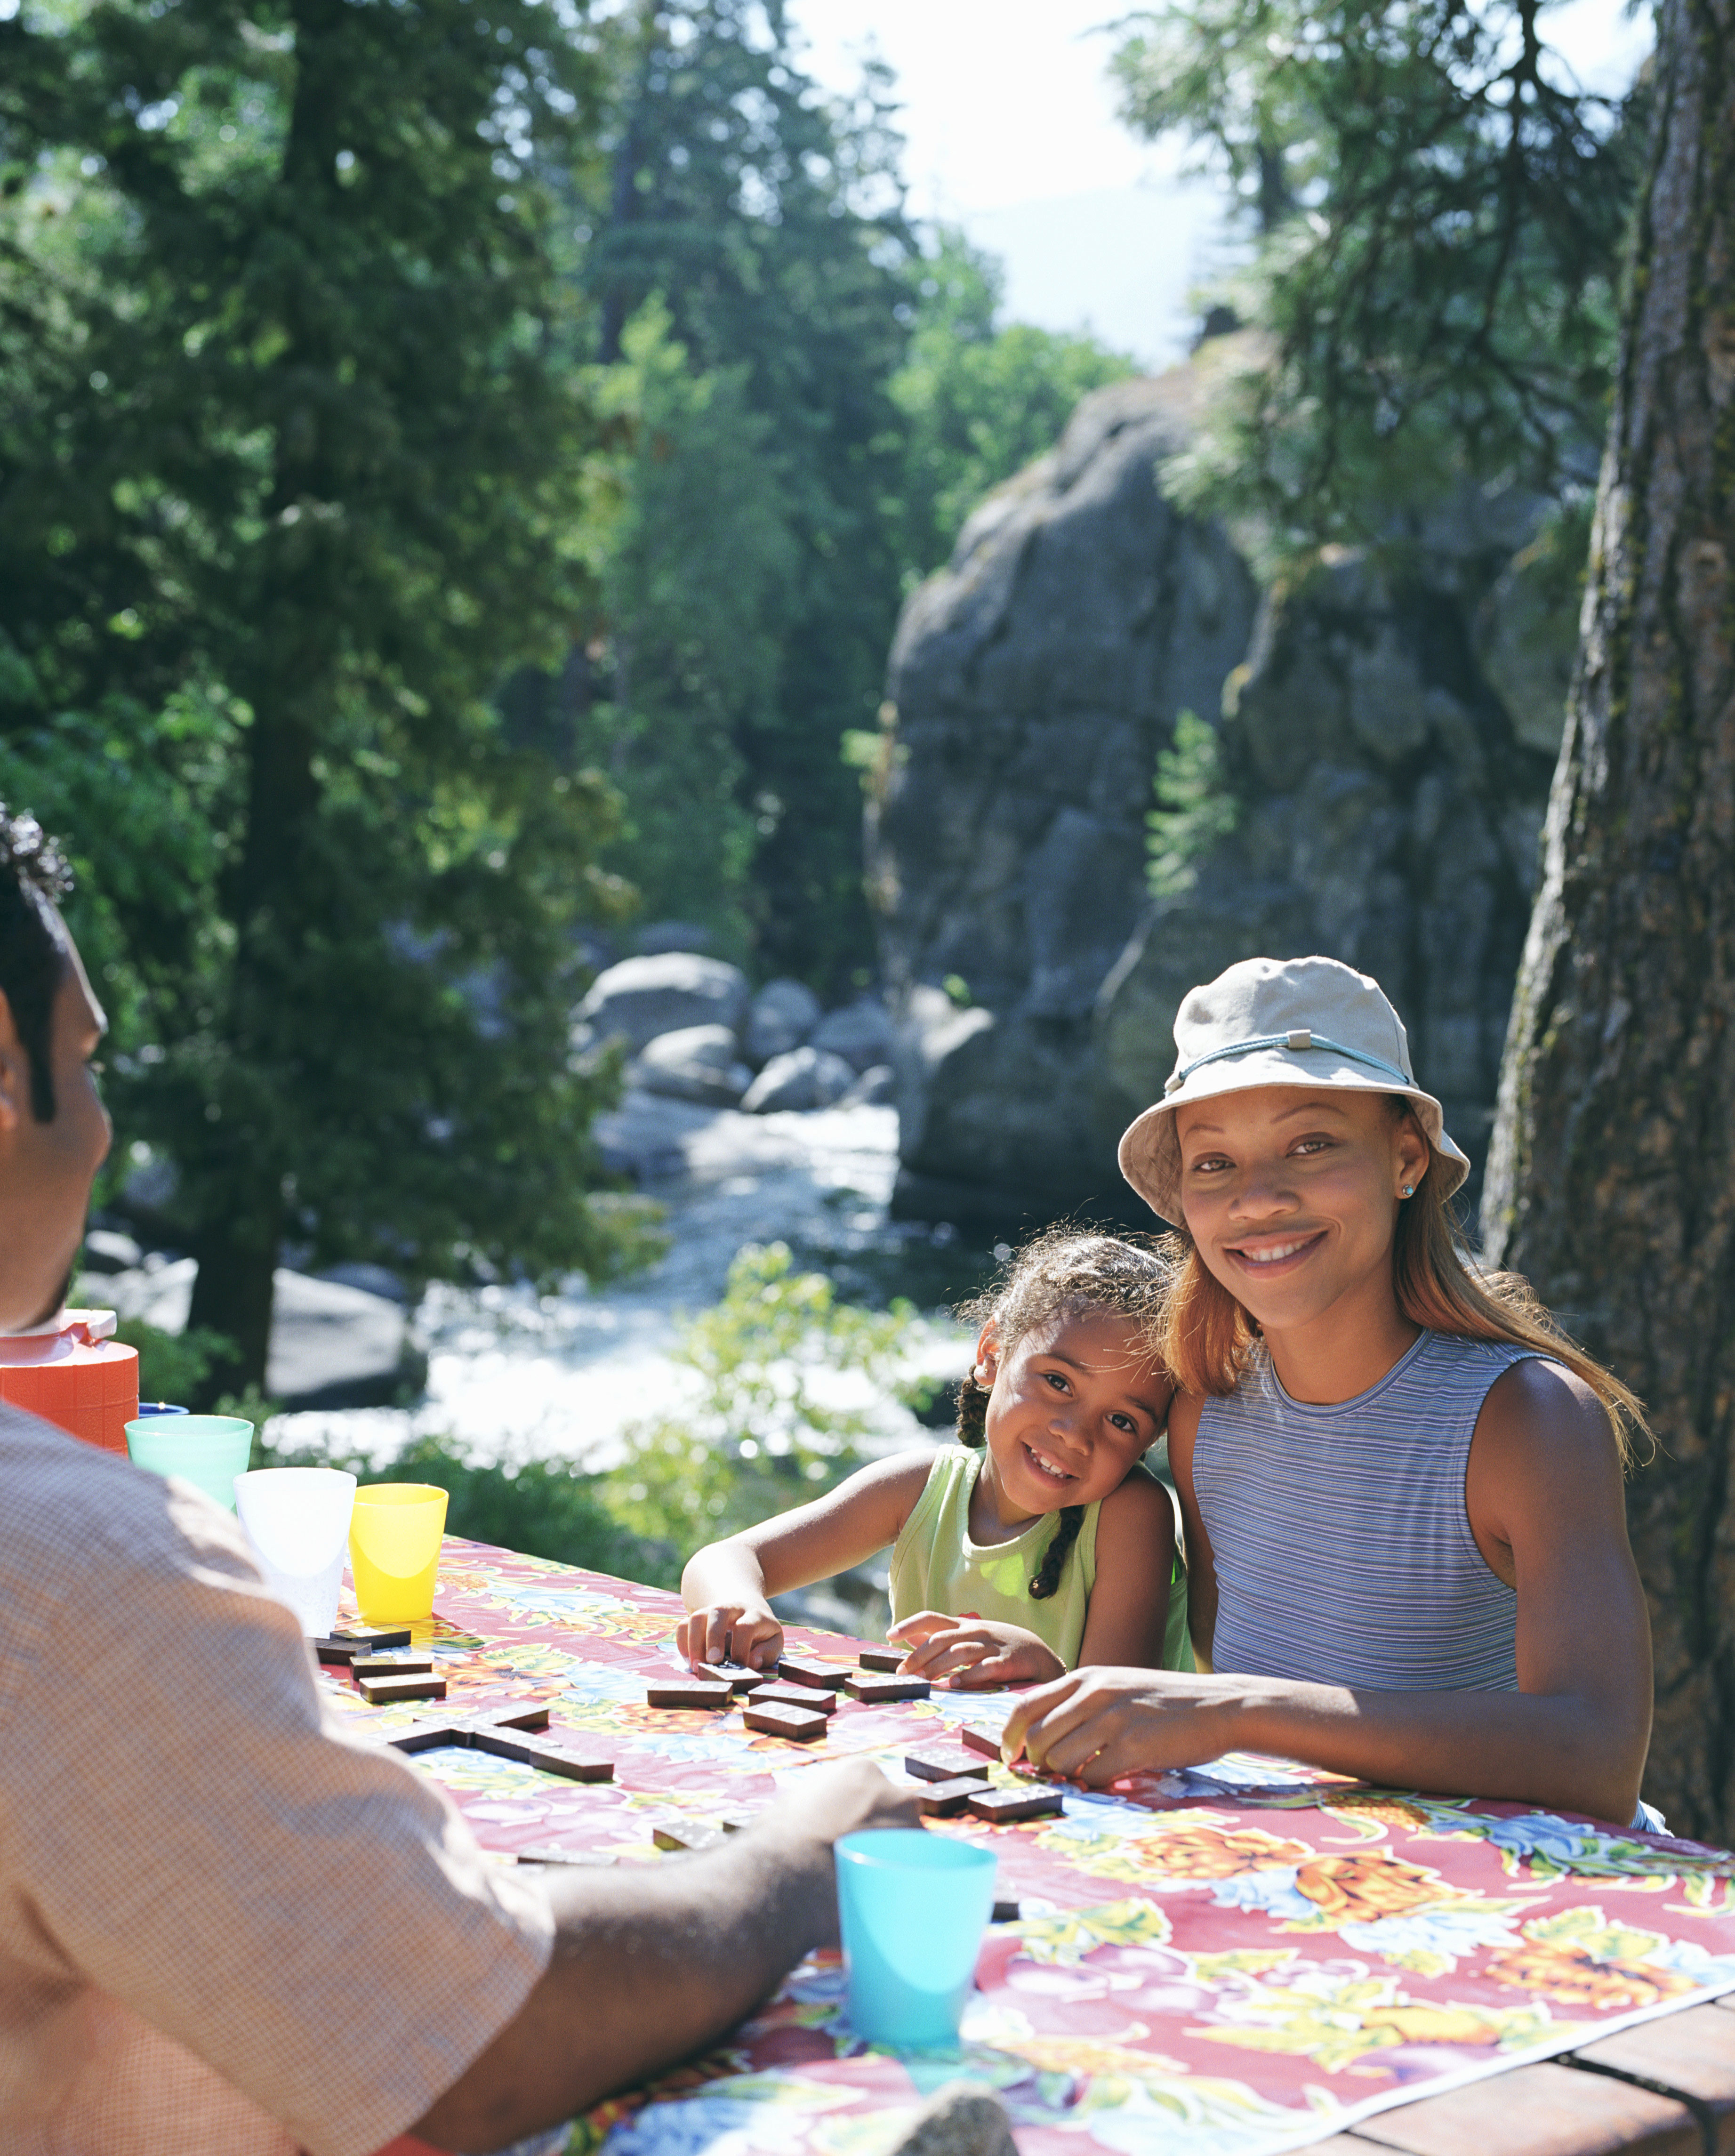 Summer Fun - A family plays board games outside in the mountains.